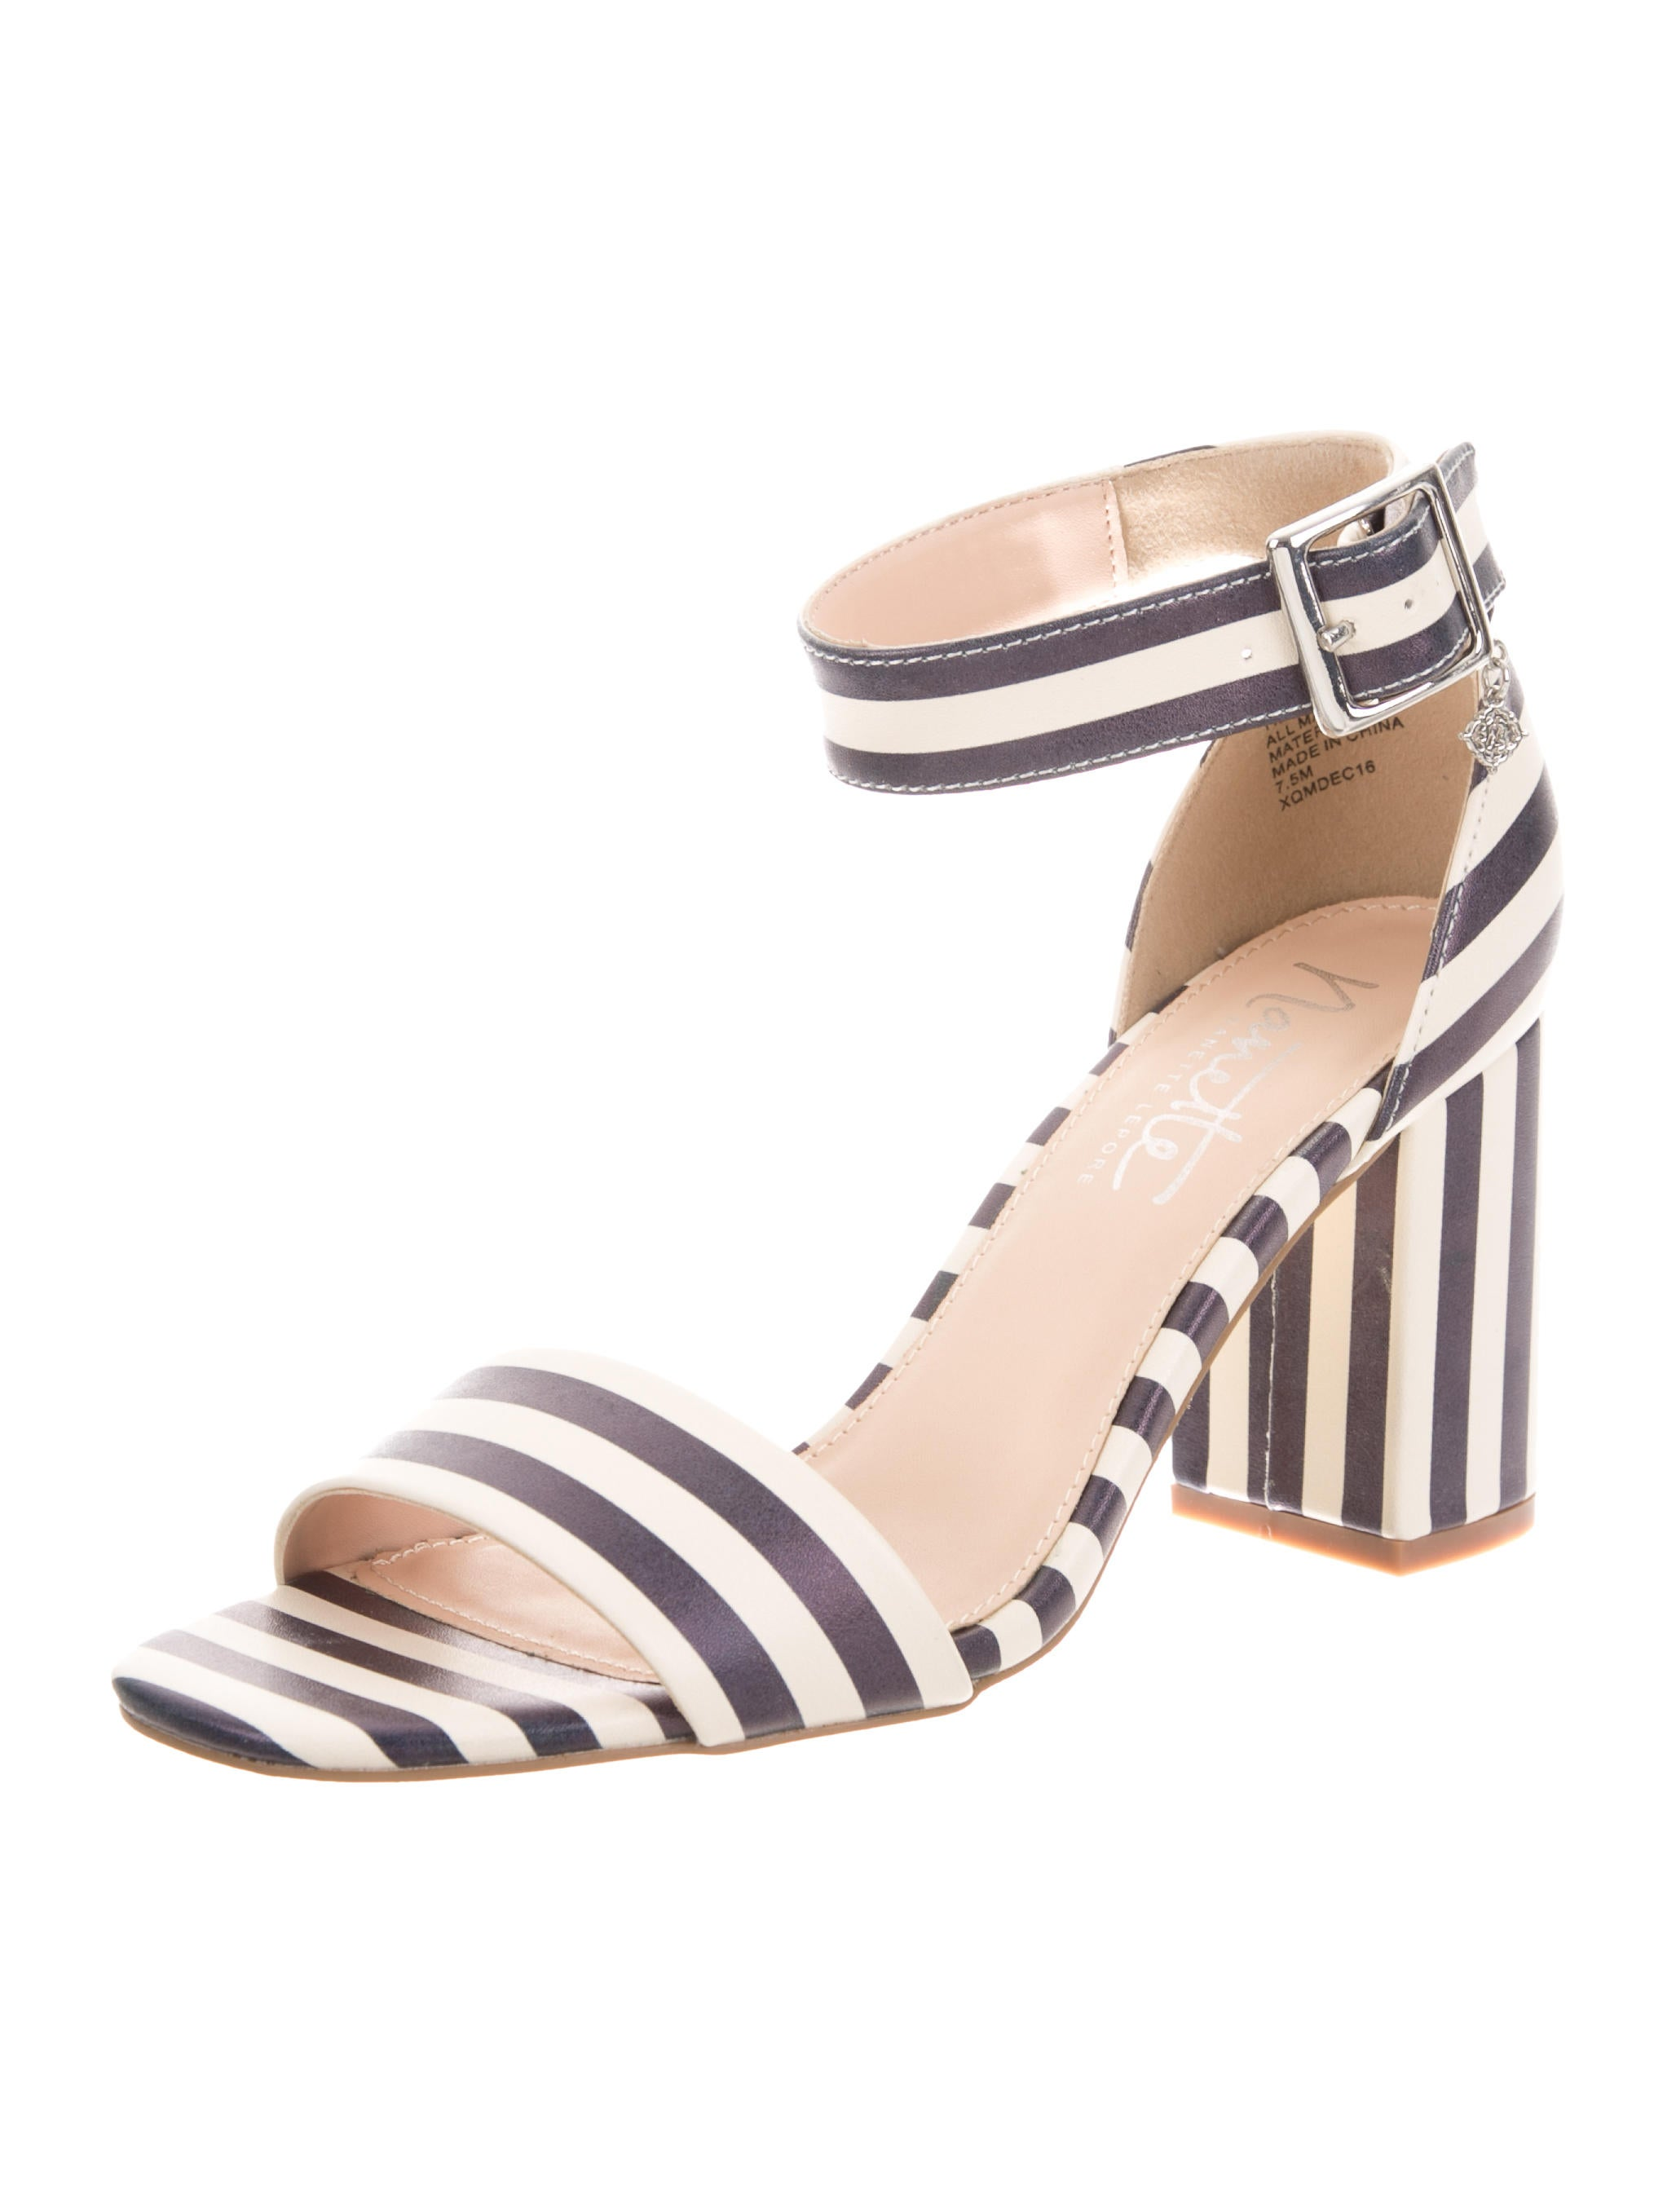 Nanette Lepore Tilda Striped Sandals w/ Tags buy cheap extremely tLnLx